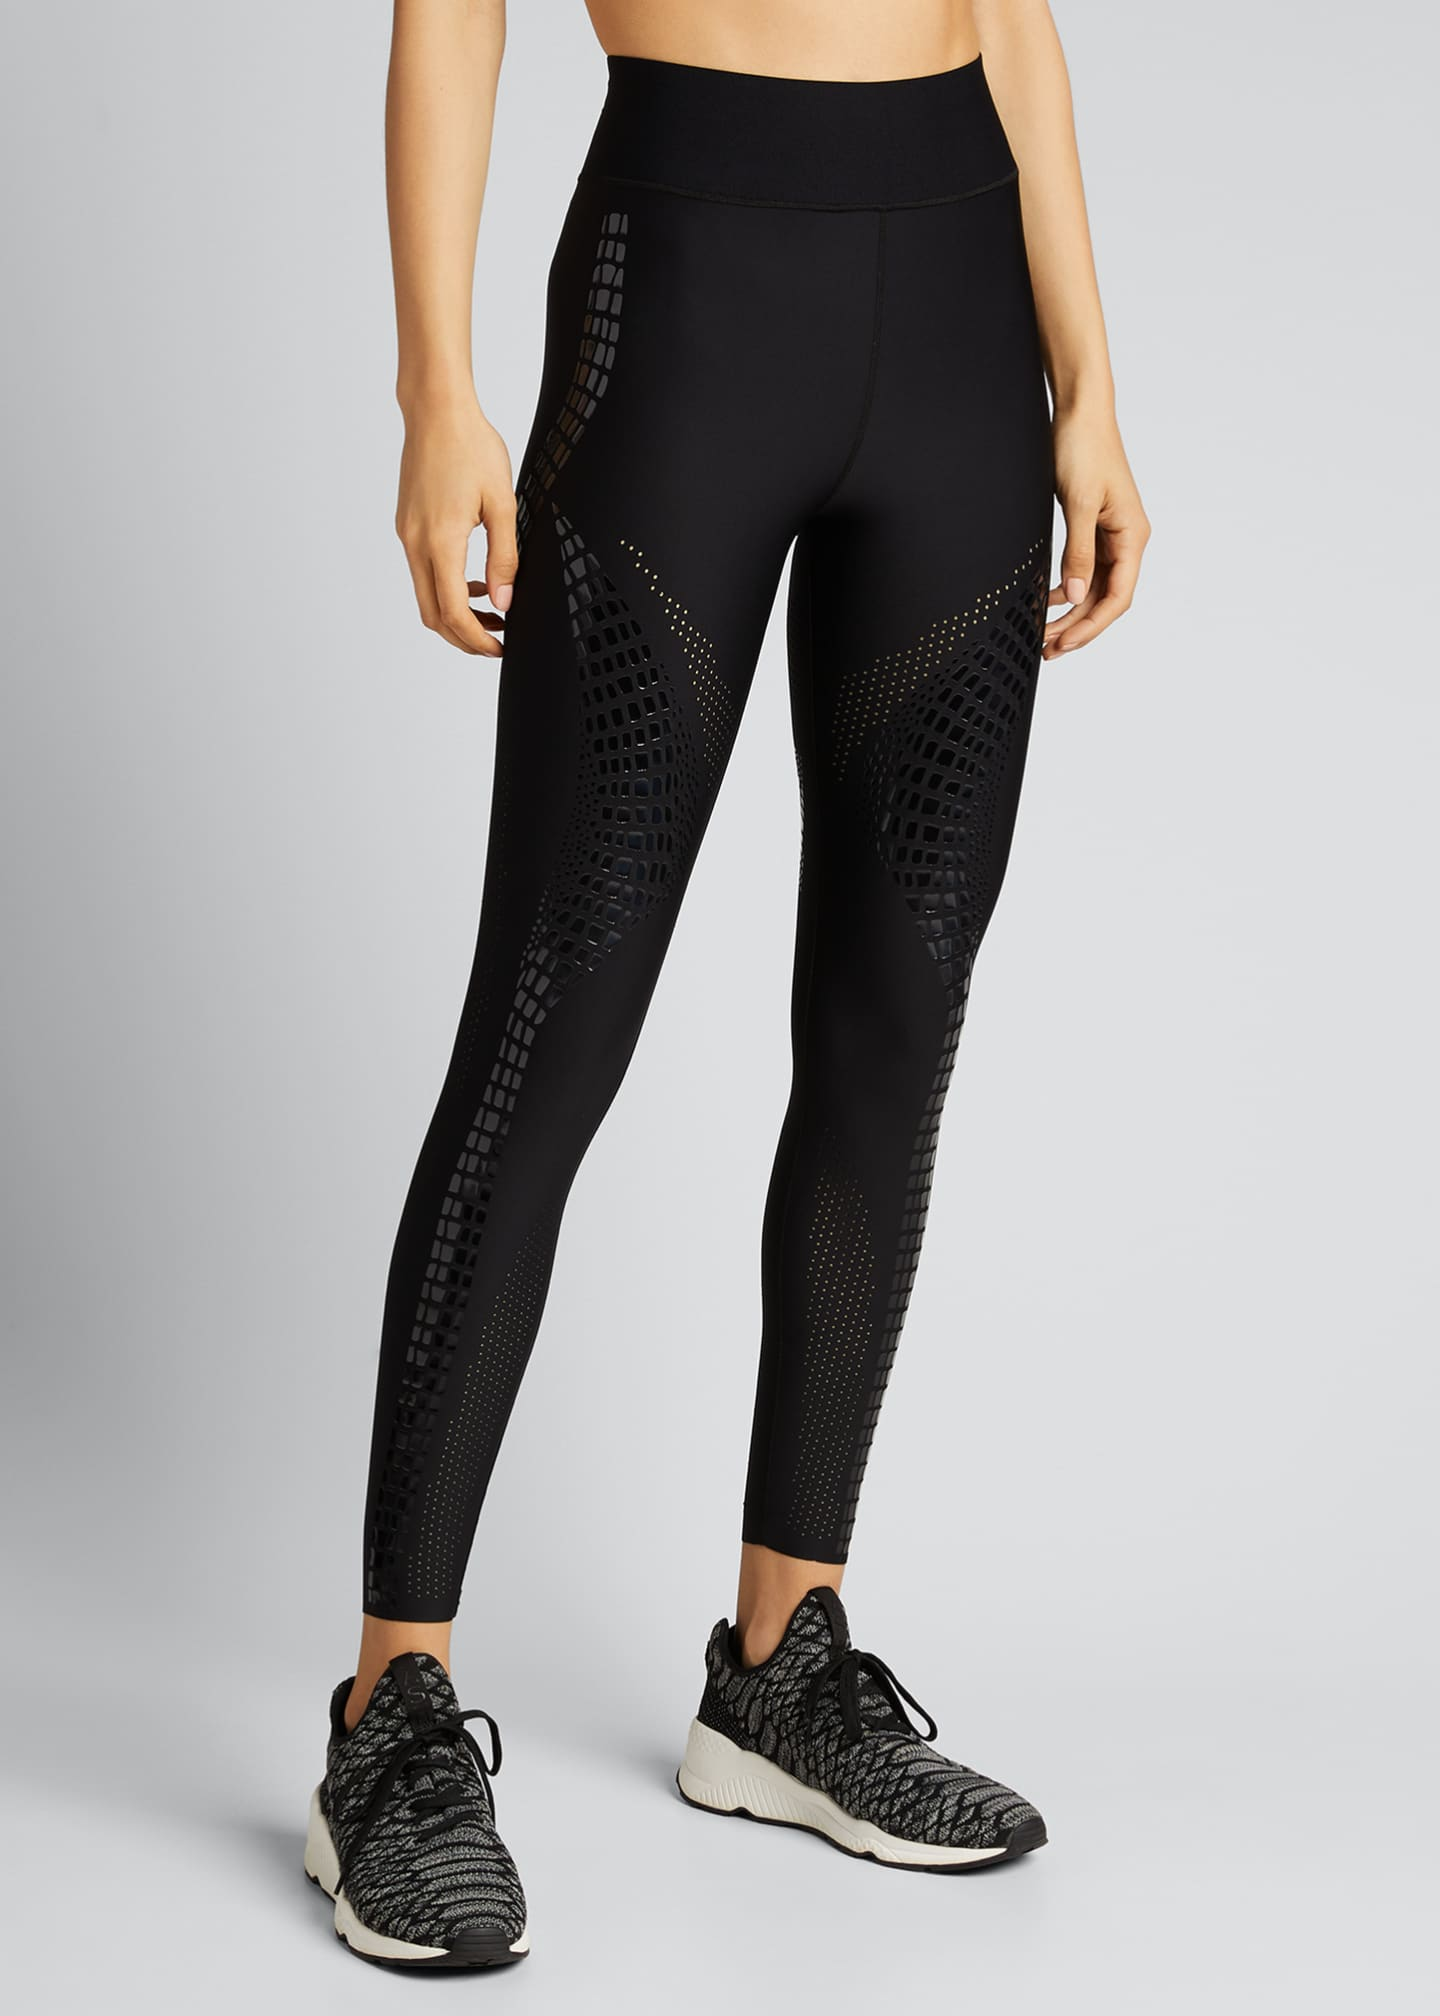 Image 3 of 5: Croc Palisades Ultra-High Leggings